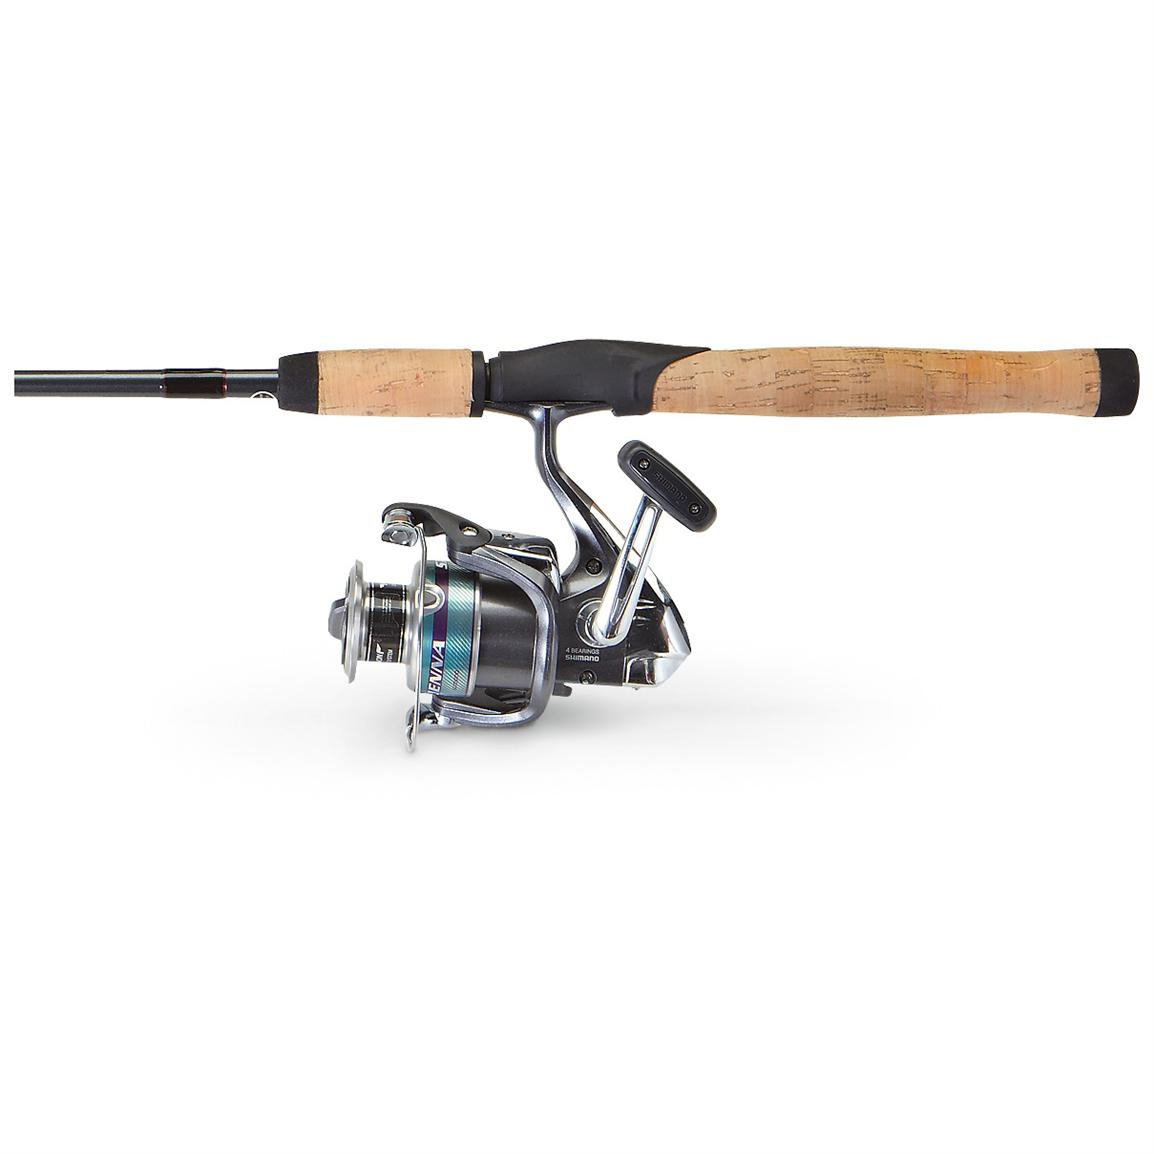 53cb64b62c1 Shimano IX/SRS Spinning Combo - 621456, Spinning Combos at ...